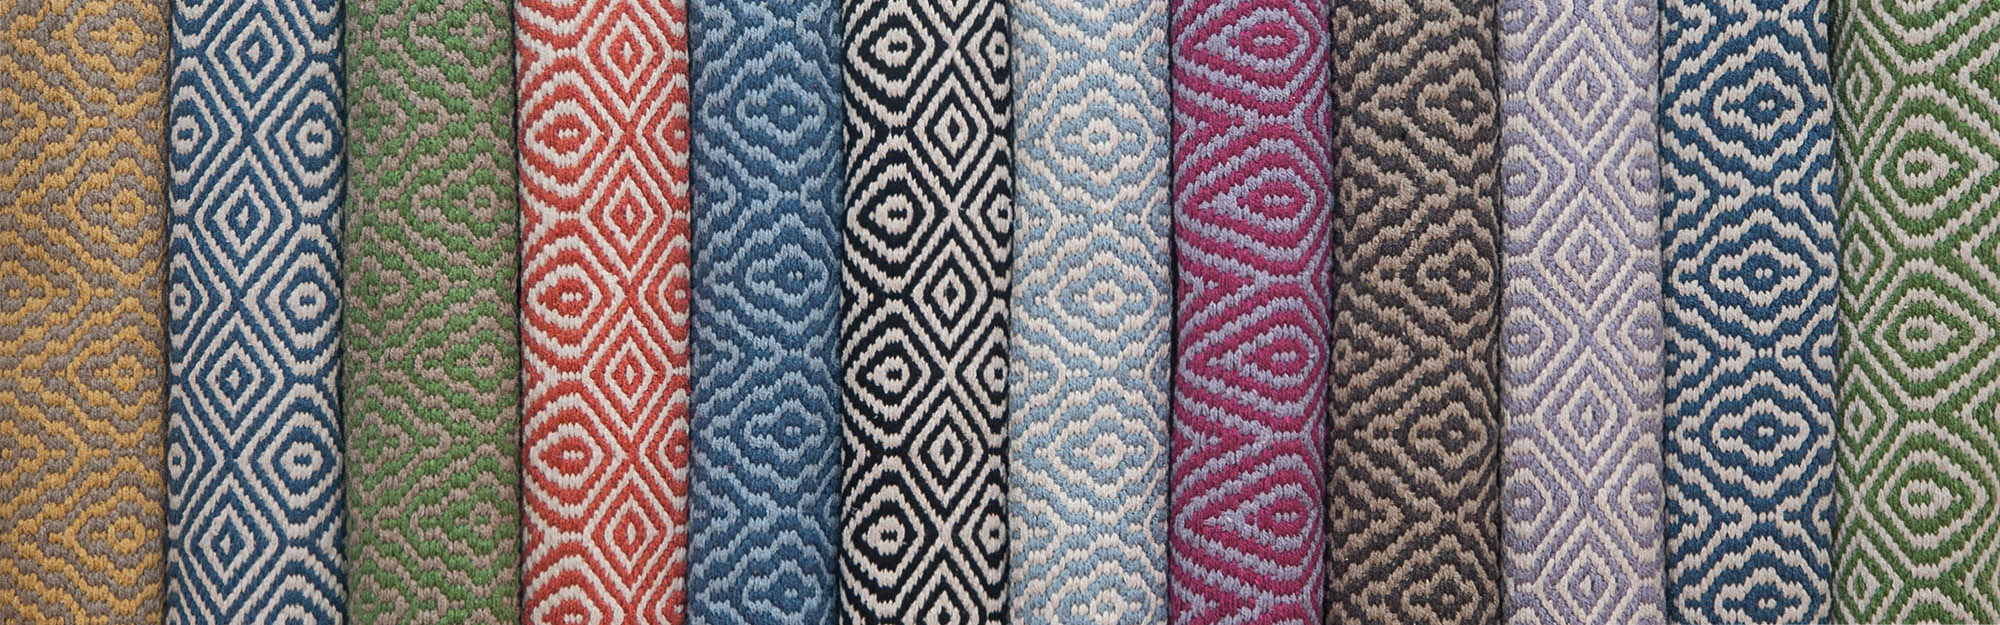 2015 collection of Eco Cotton patterned rugs